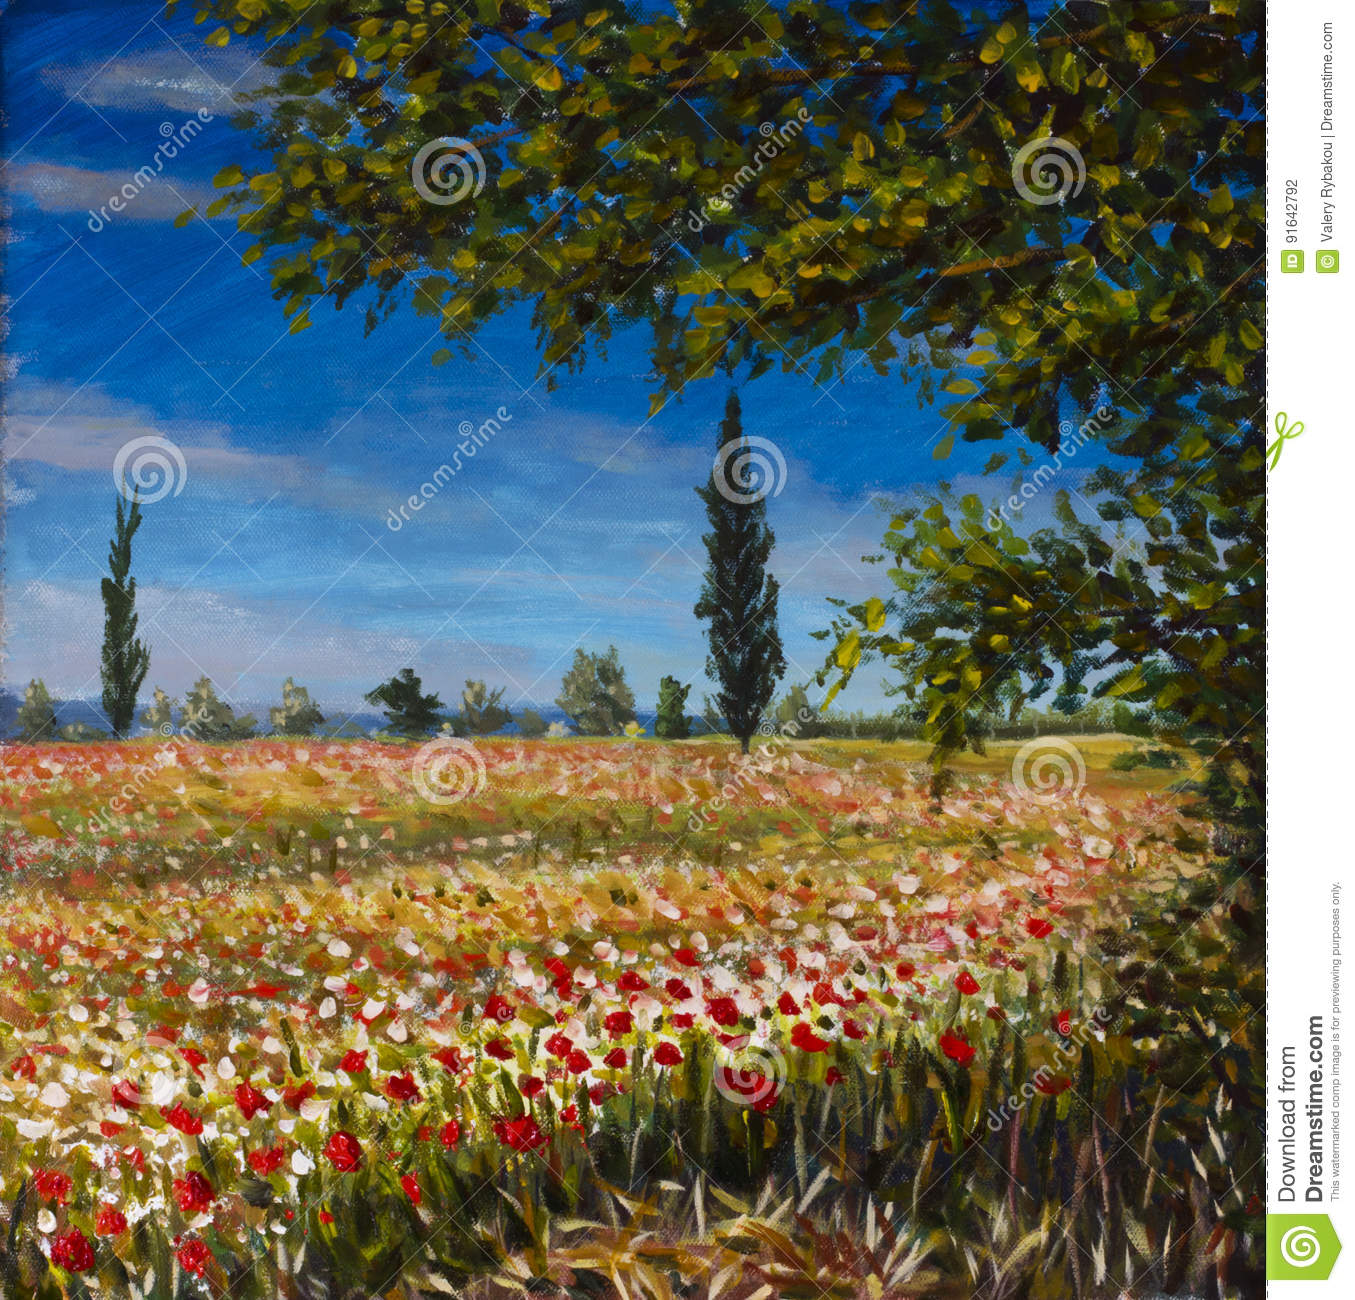 Original Oil Painting On Canvas. Beautiful French Landscape, Rural Landscape Field Of Red Poppies Landscape. Modern Impressionism Stock Photo